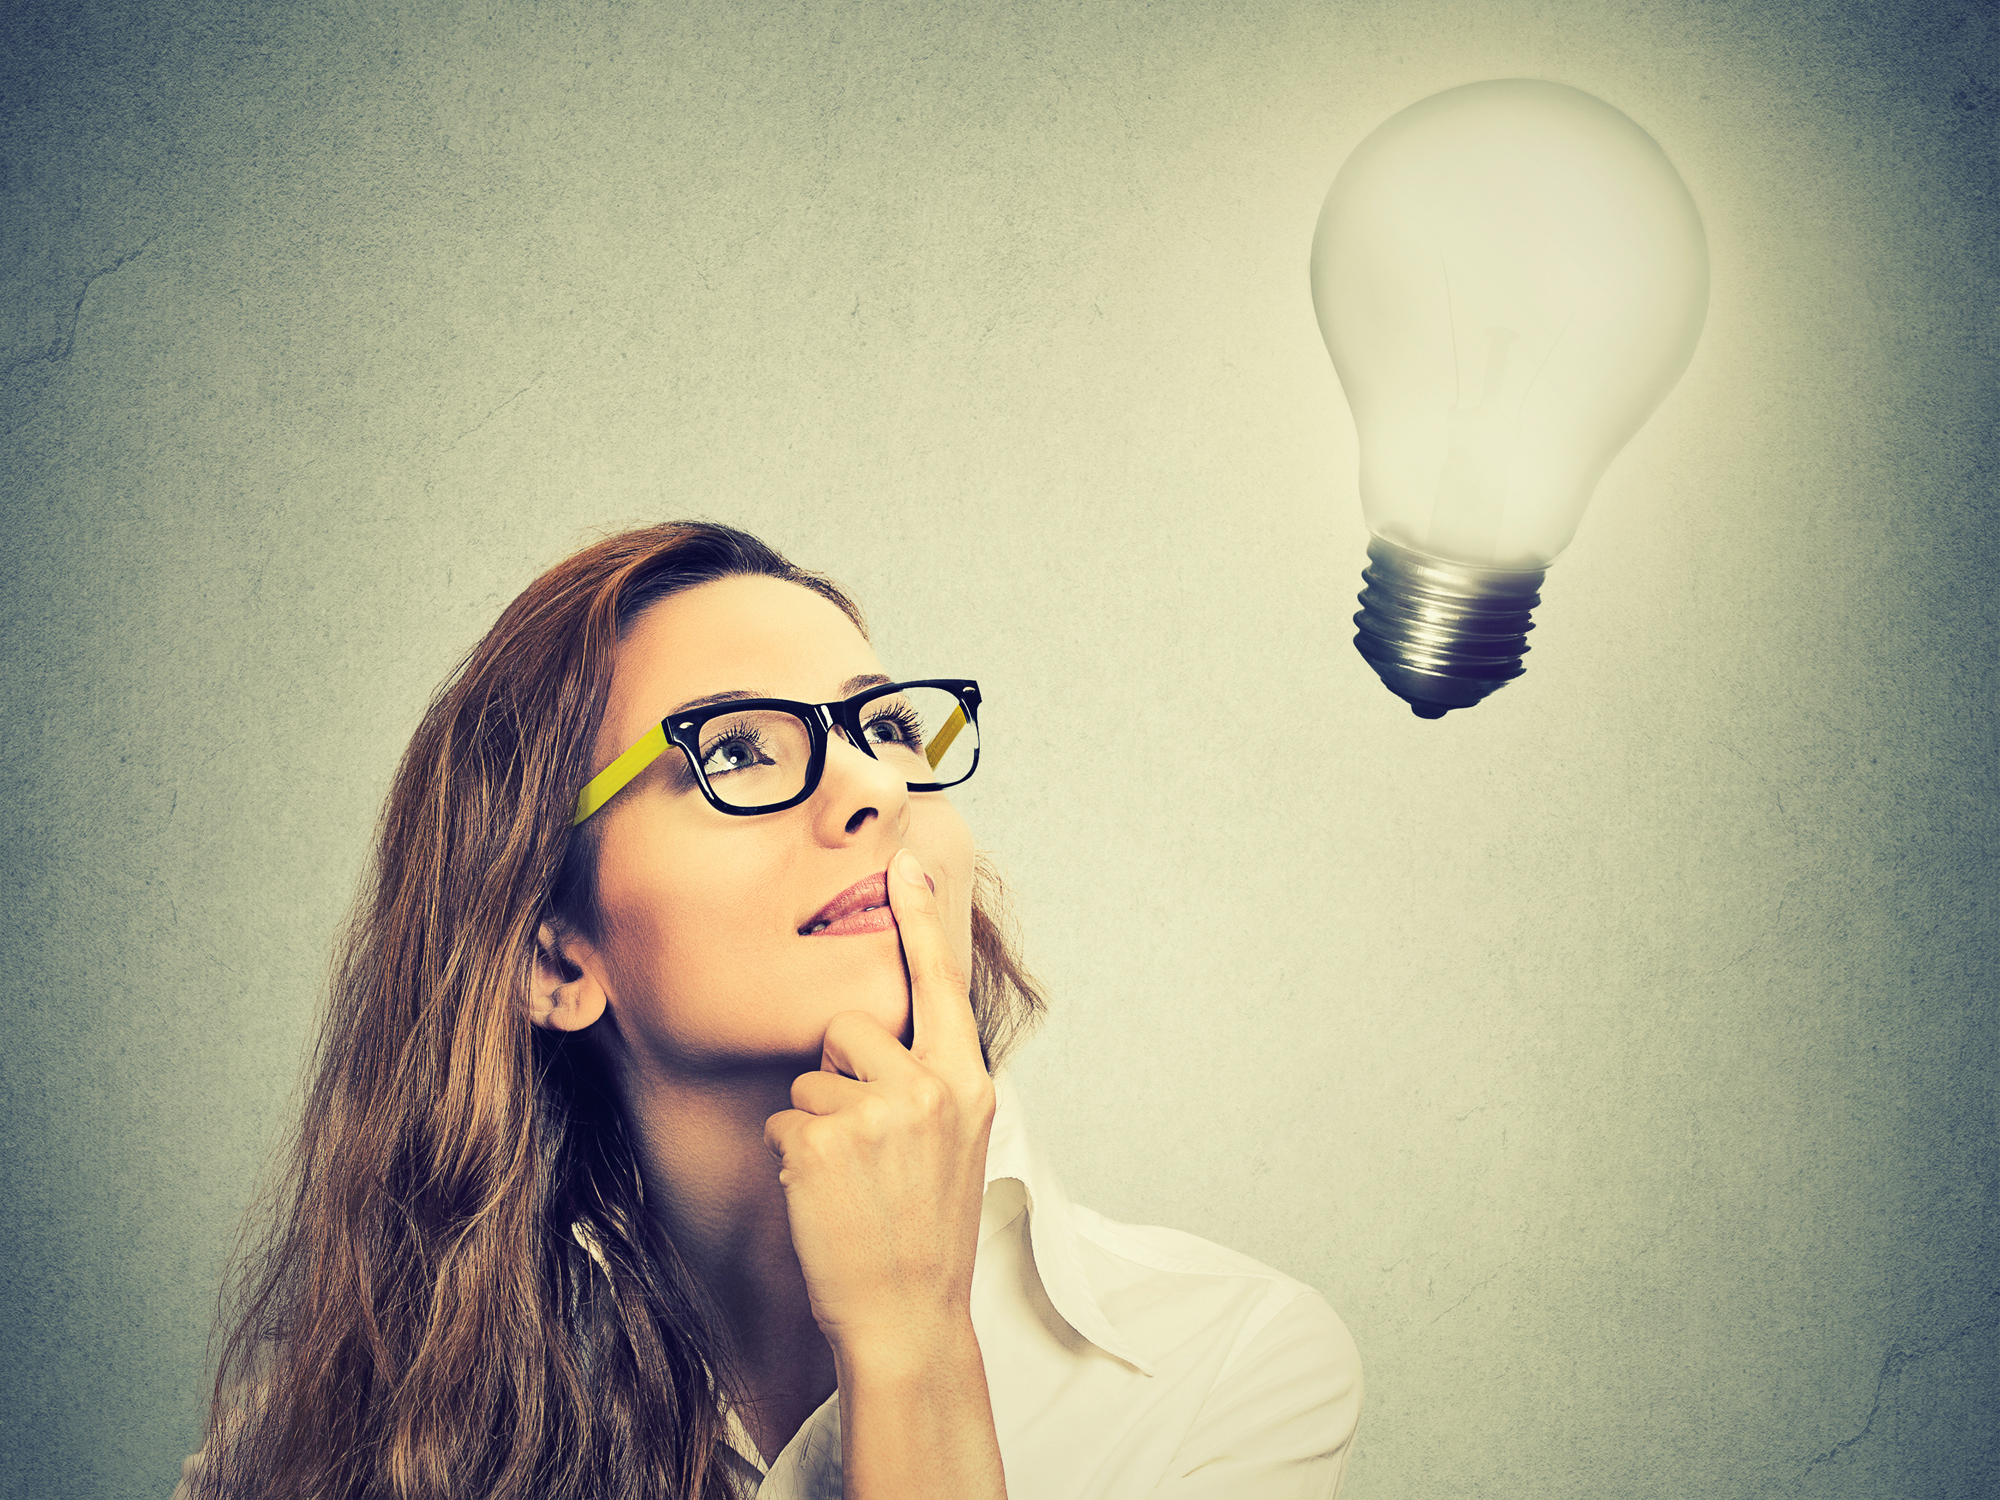 The connection between lighting and a better brain